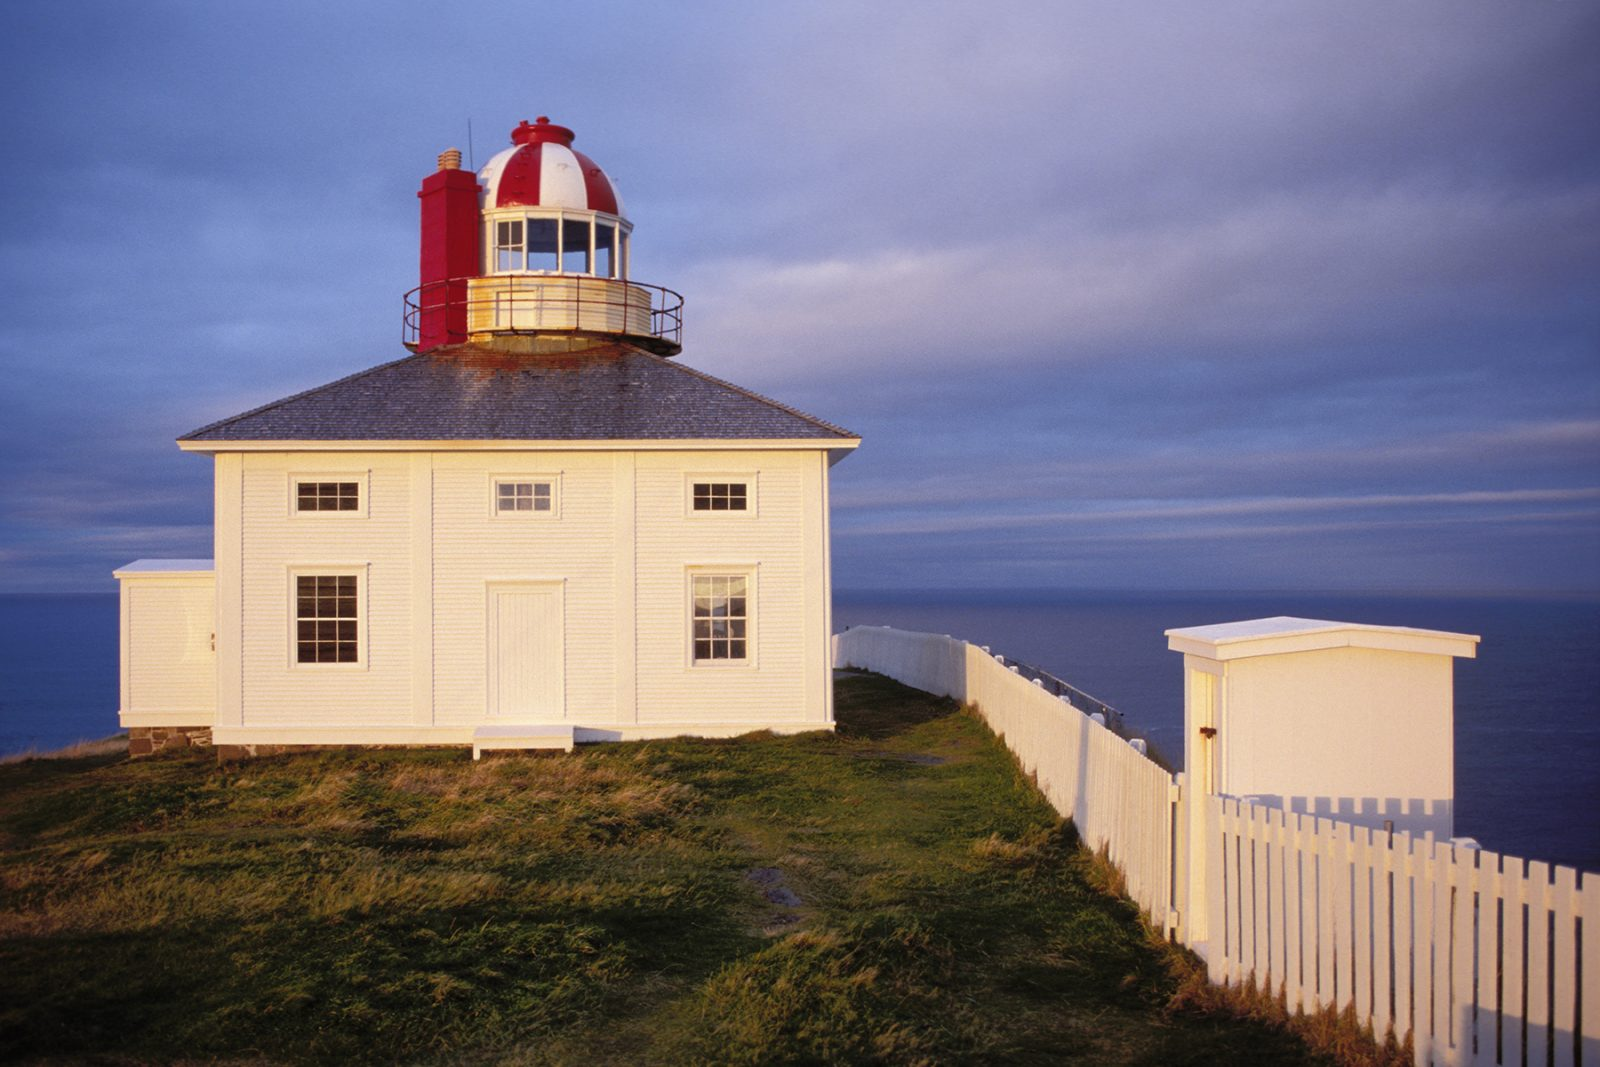 The most Easterly lighthouse in North America